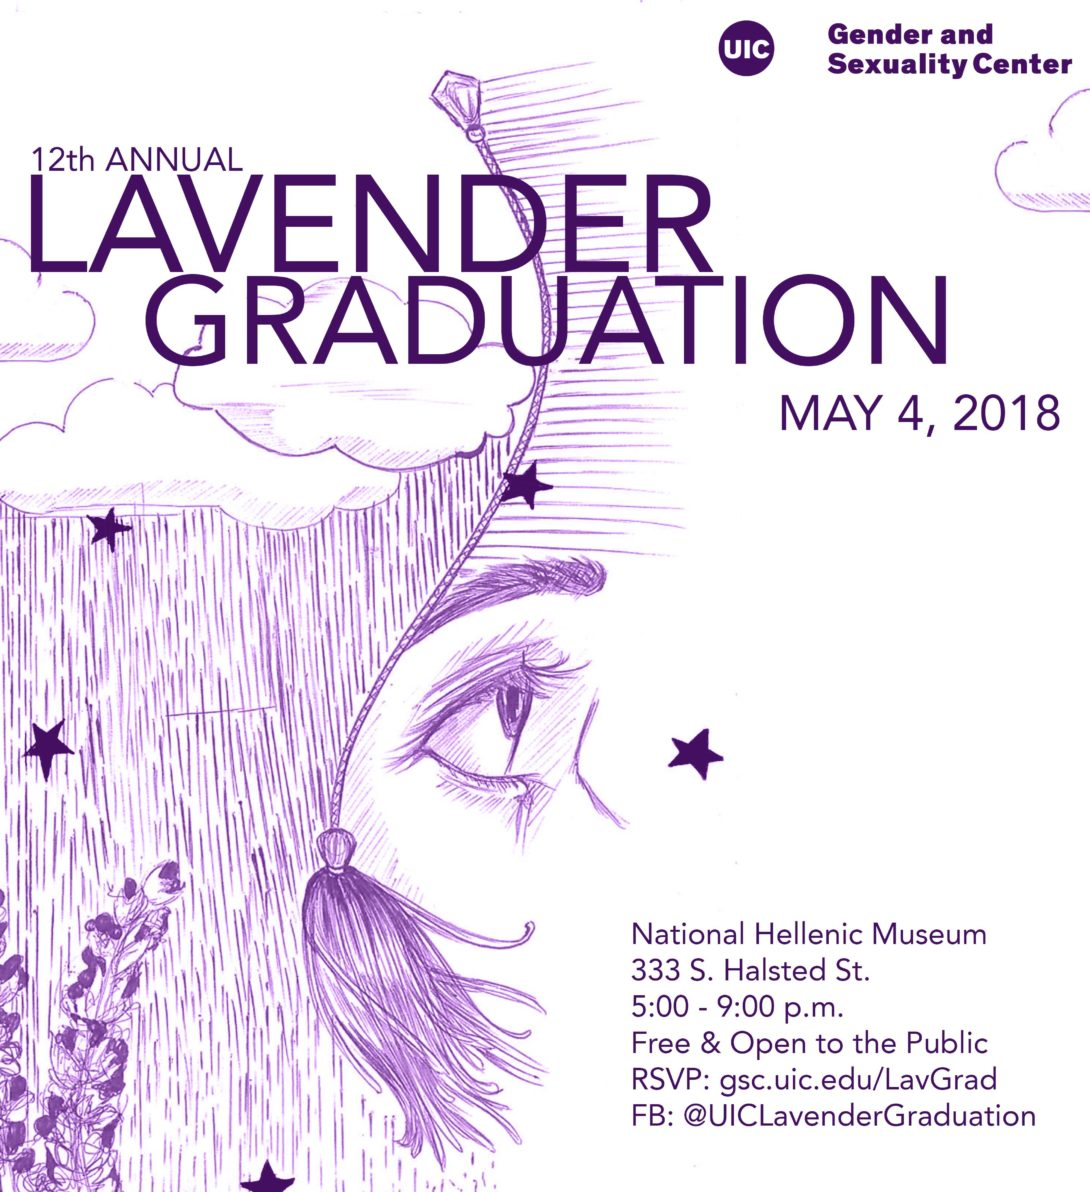 12th Annual Lavender Graduation text with an illustration of clouds with rain/hair coming down on some lavender flowers with a tassel in the air that then shows the eye and eybrow of a person looking in the distance.